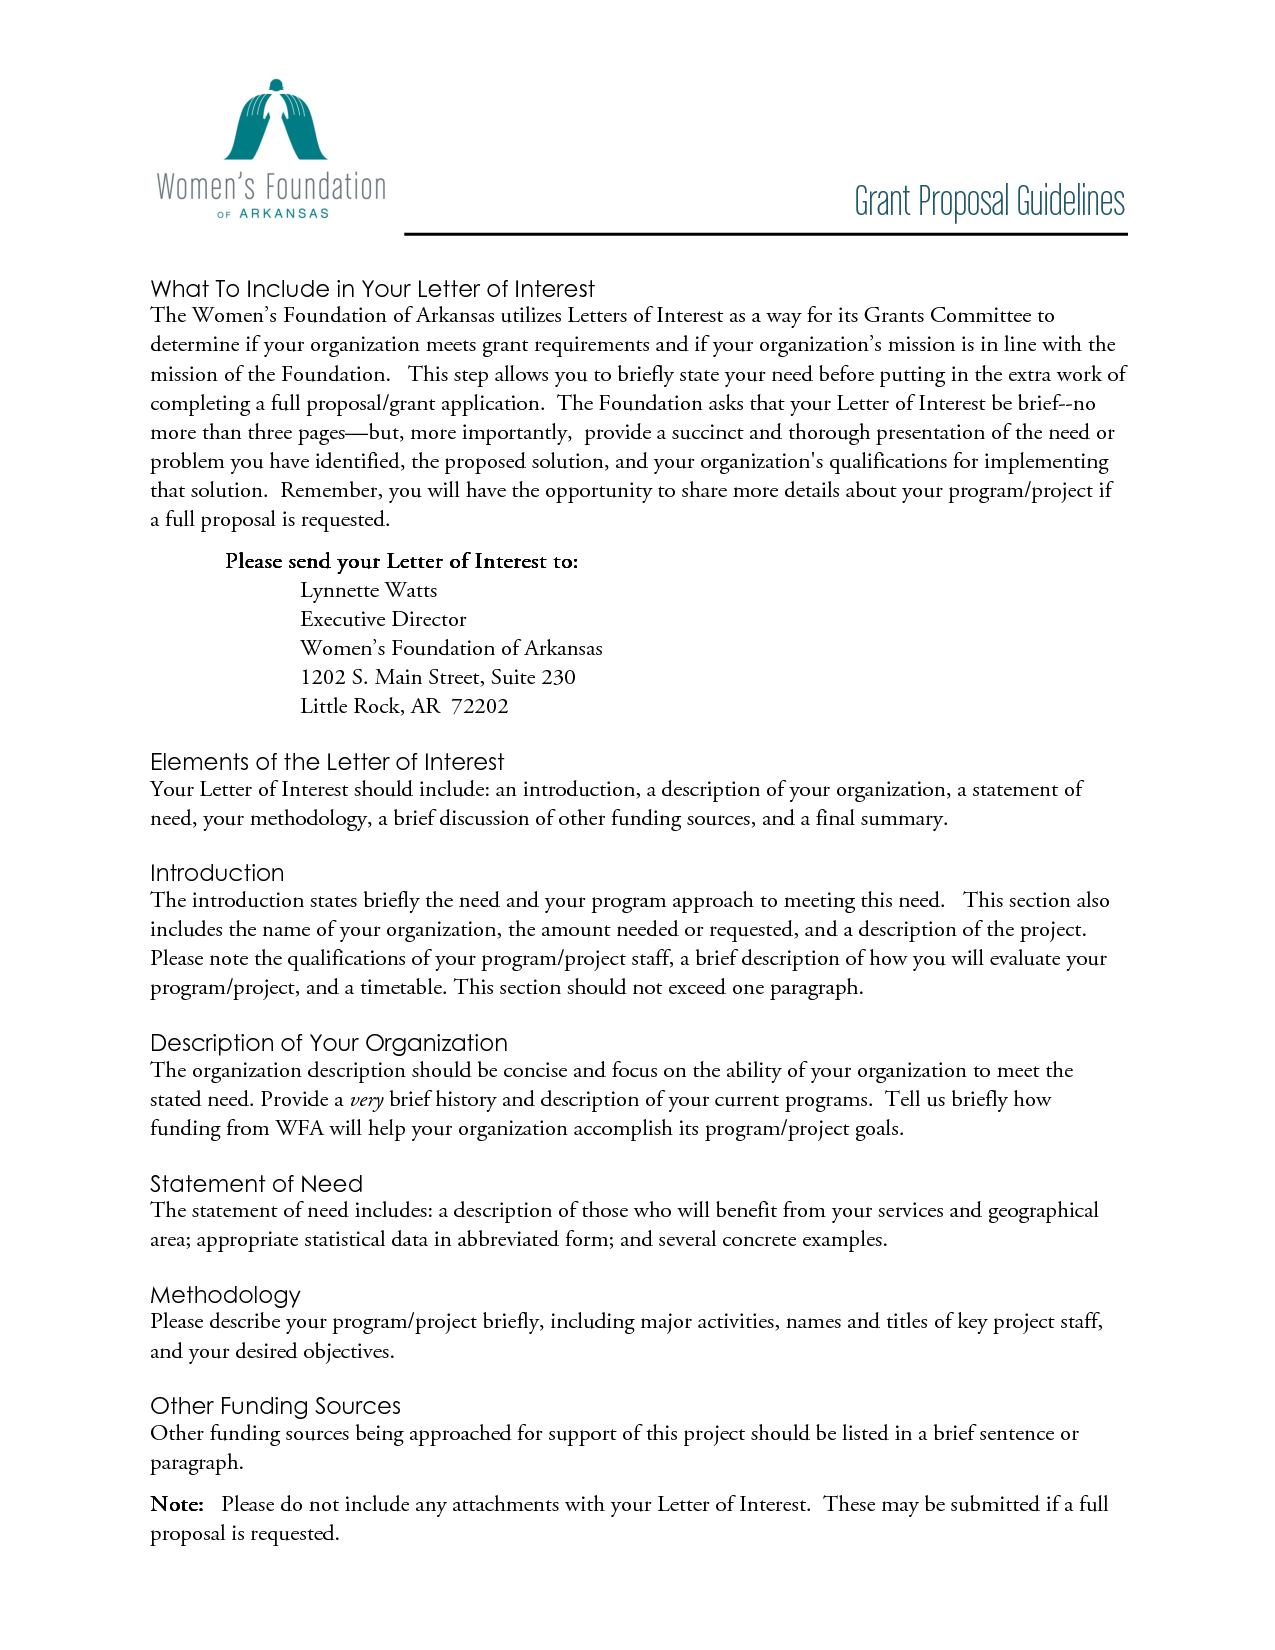 free letter of interest templates letter of interest grant proposal pdf